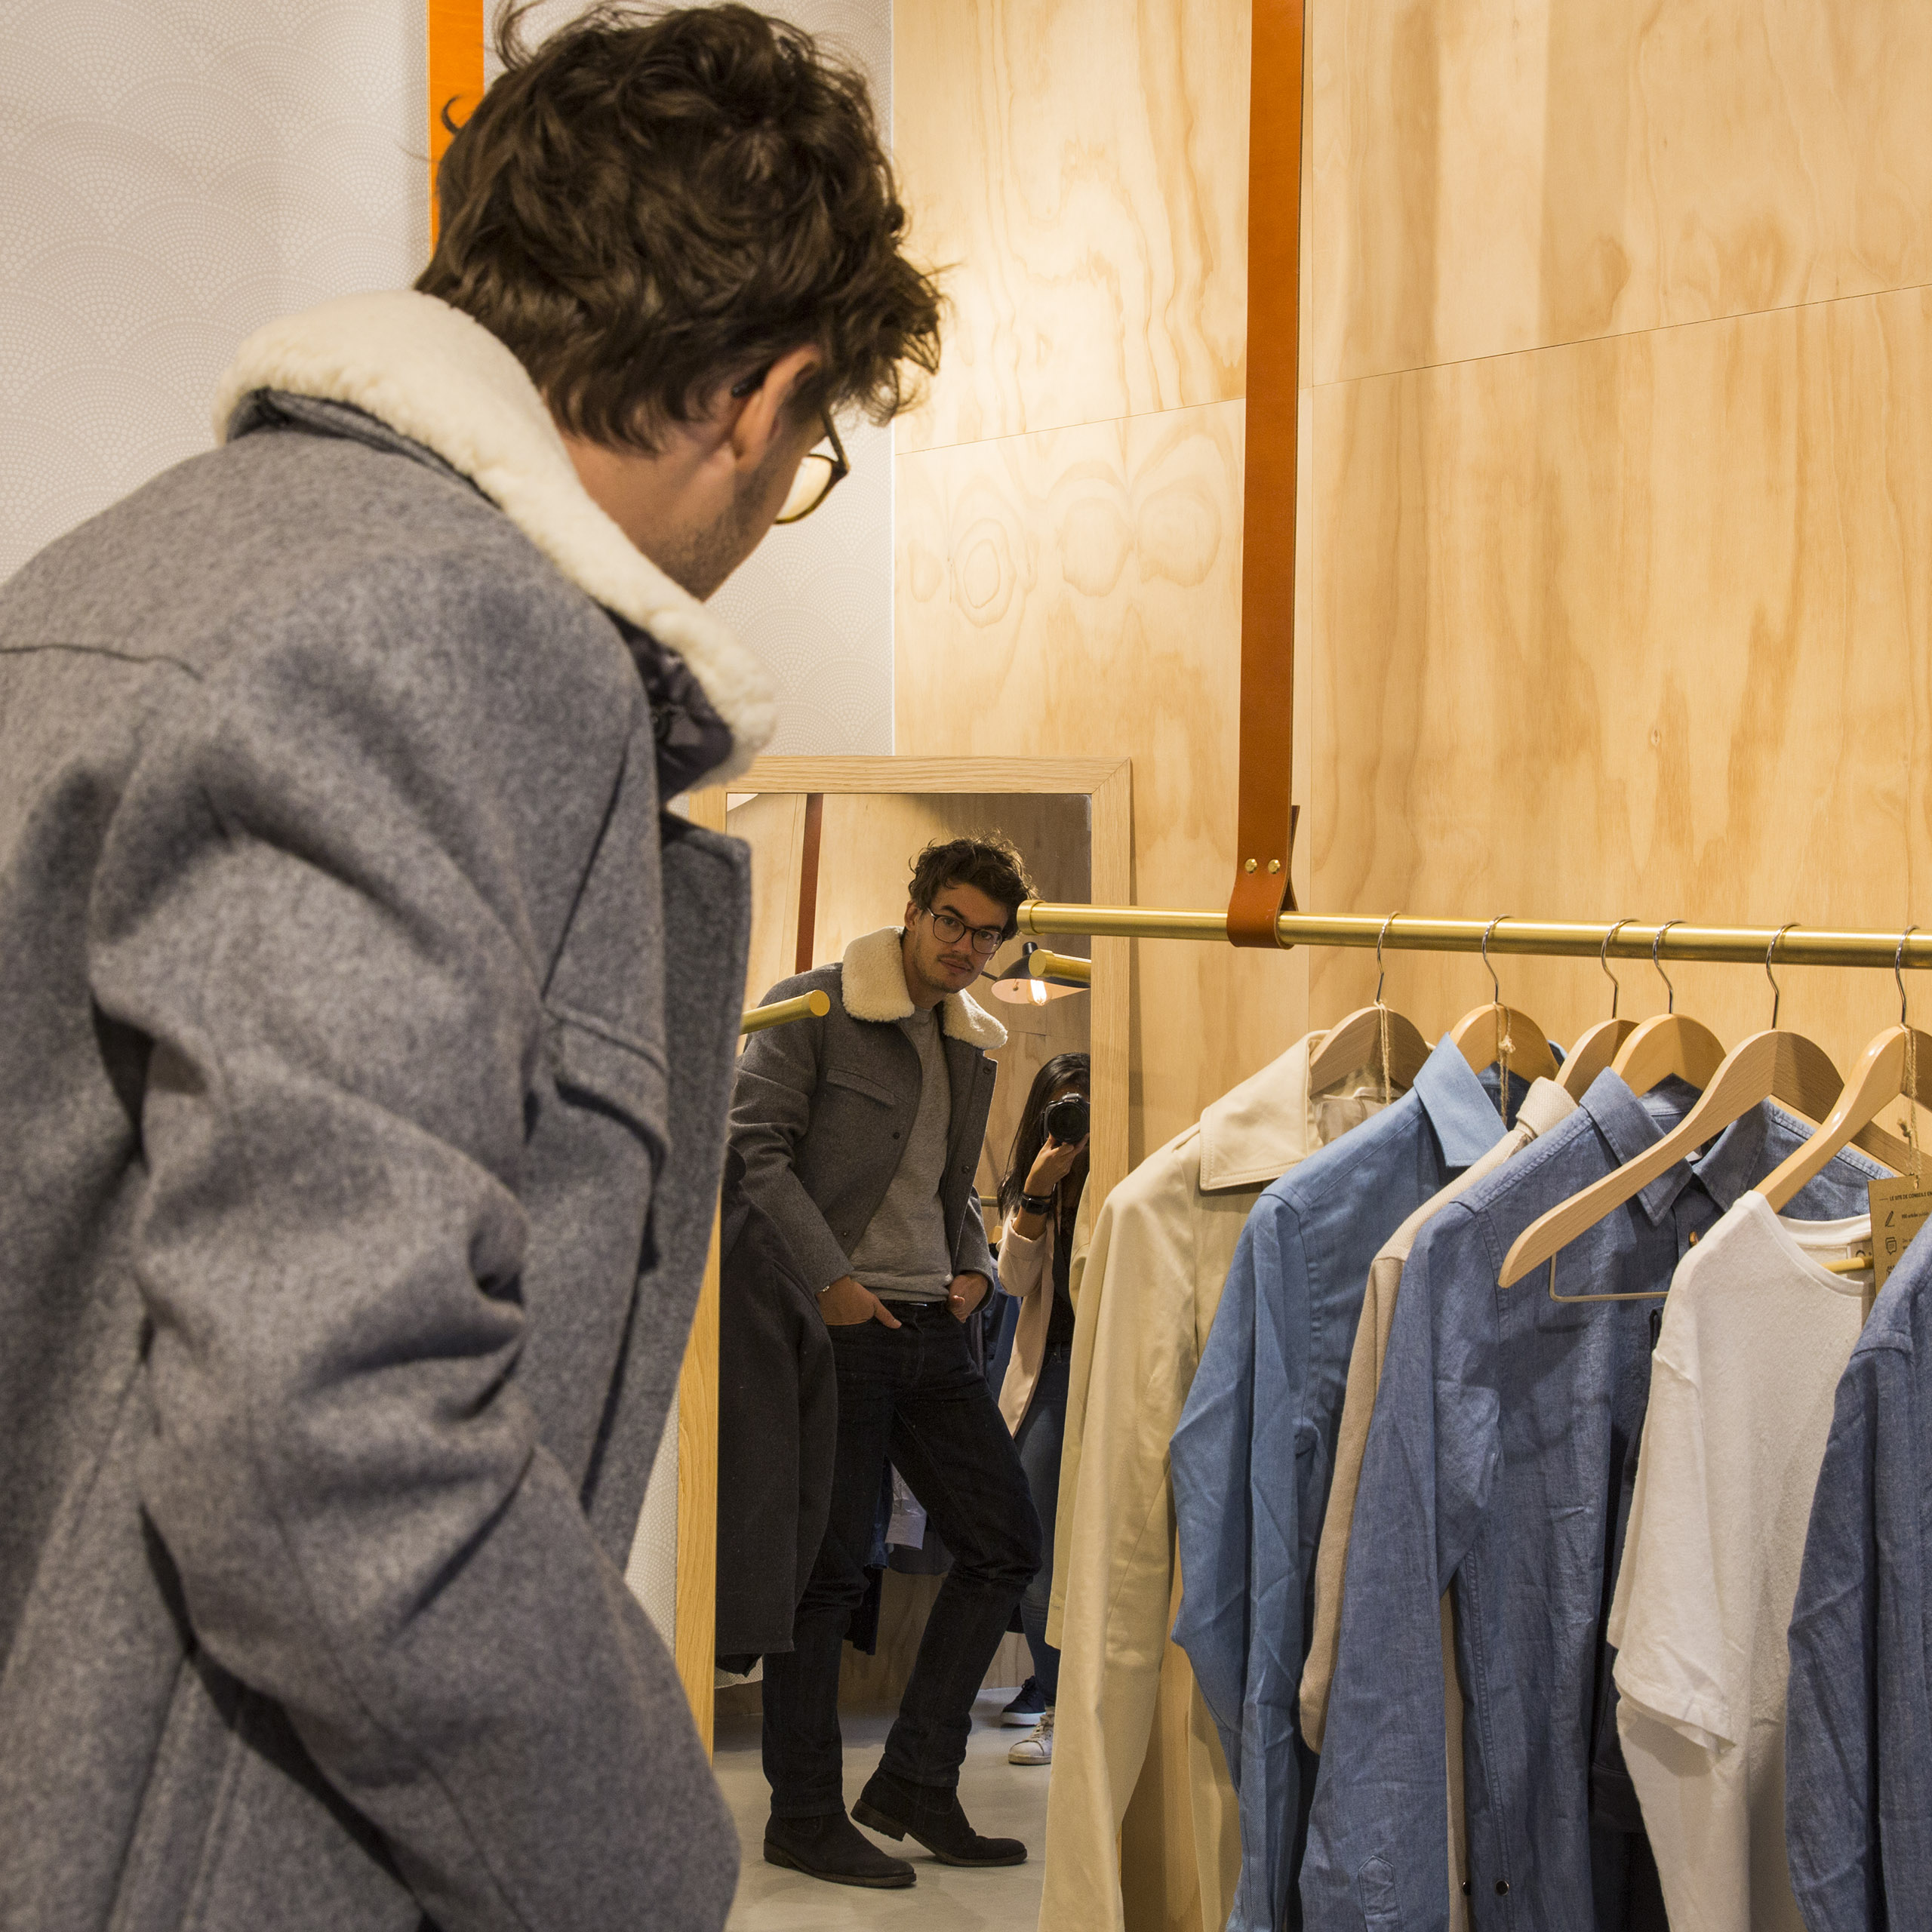 Paris – Geoffrey, Inside a Men's Fashion Startup 4